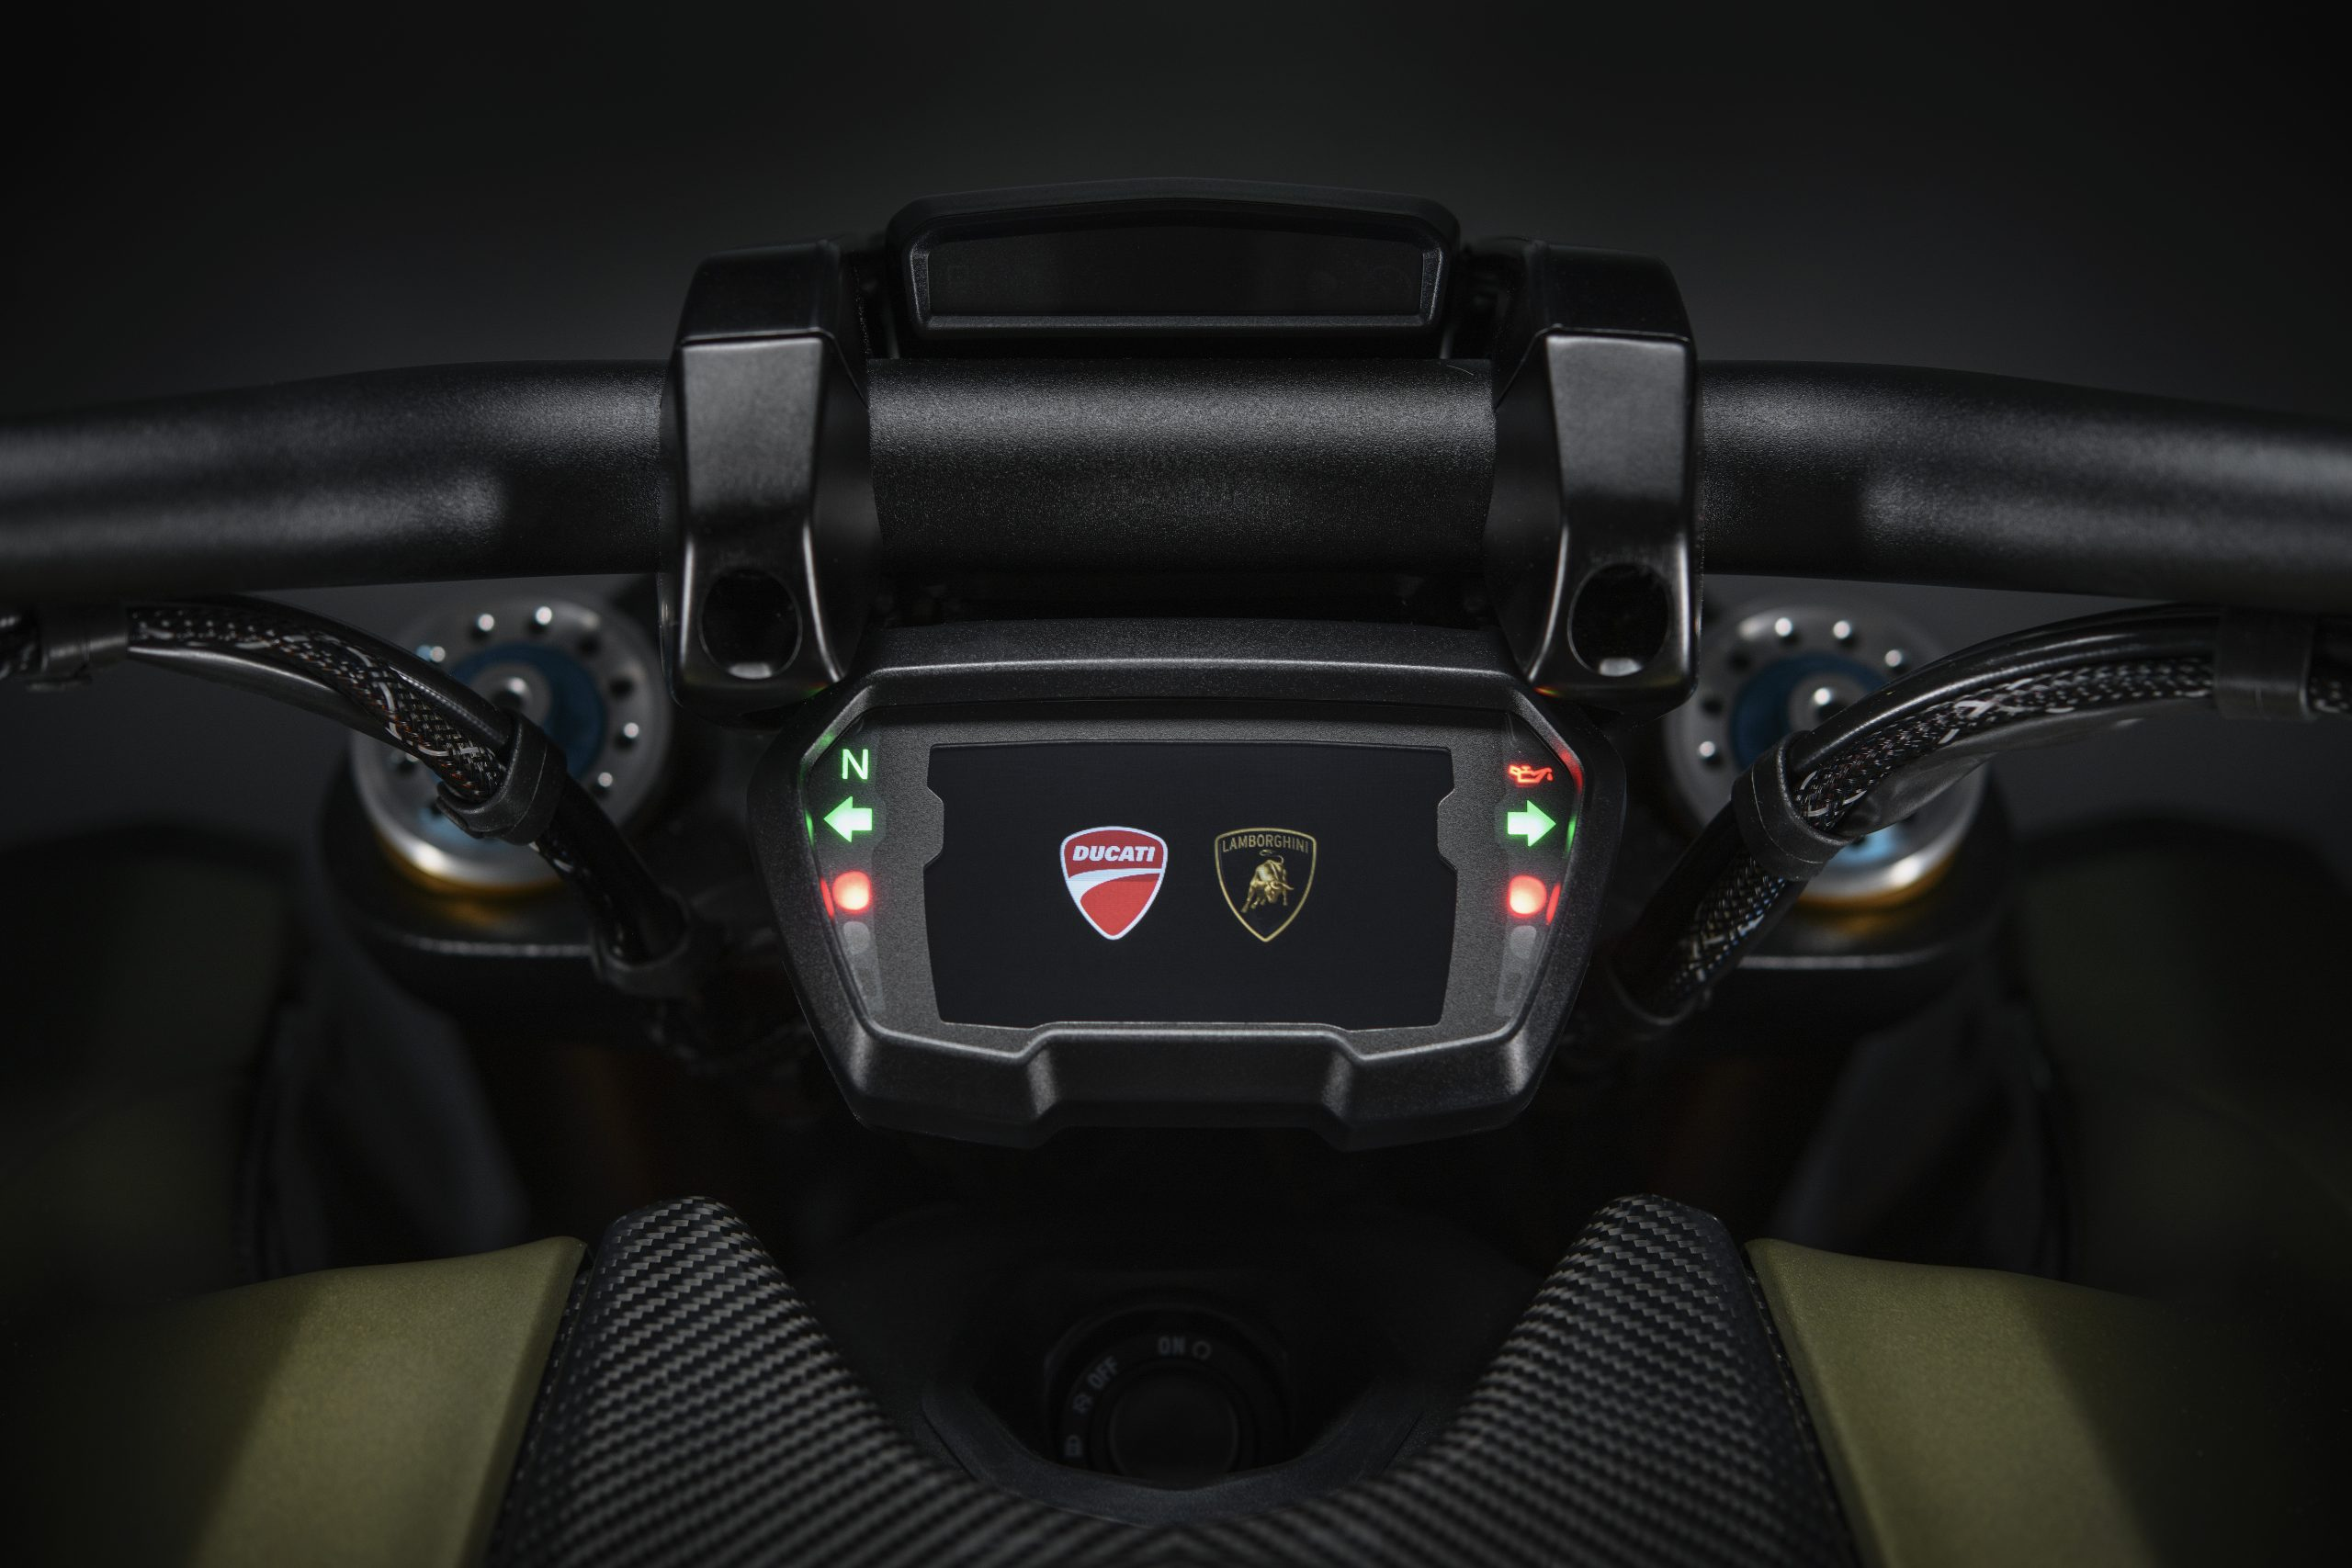 DUCATI_DIAVEL_1260_LAMBORGHINI_26_UC213079_High